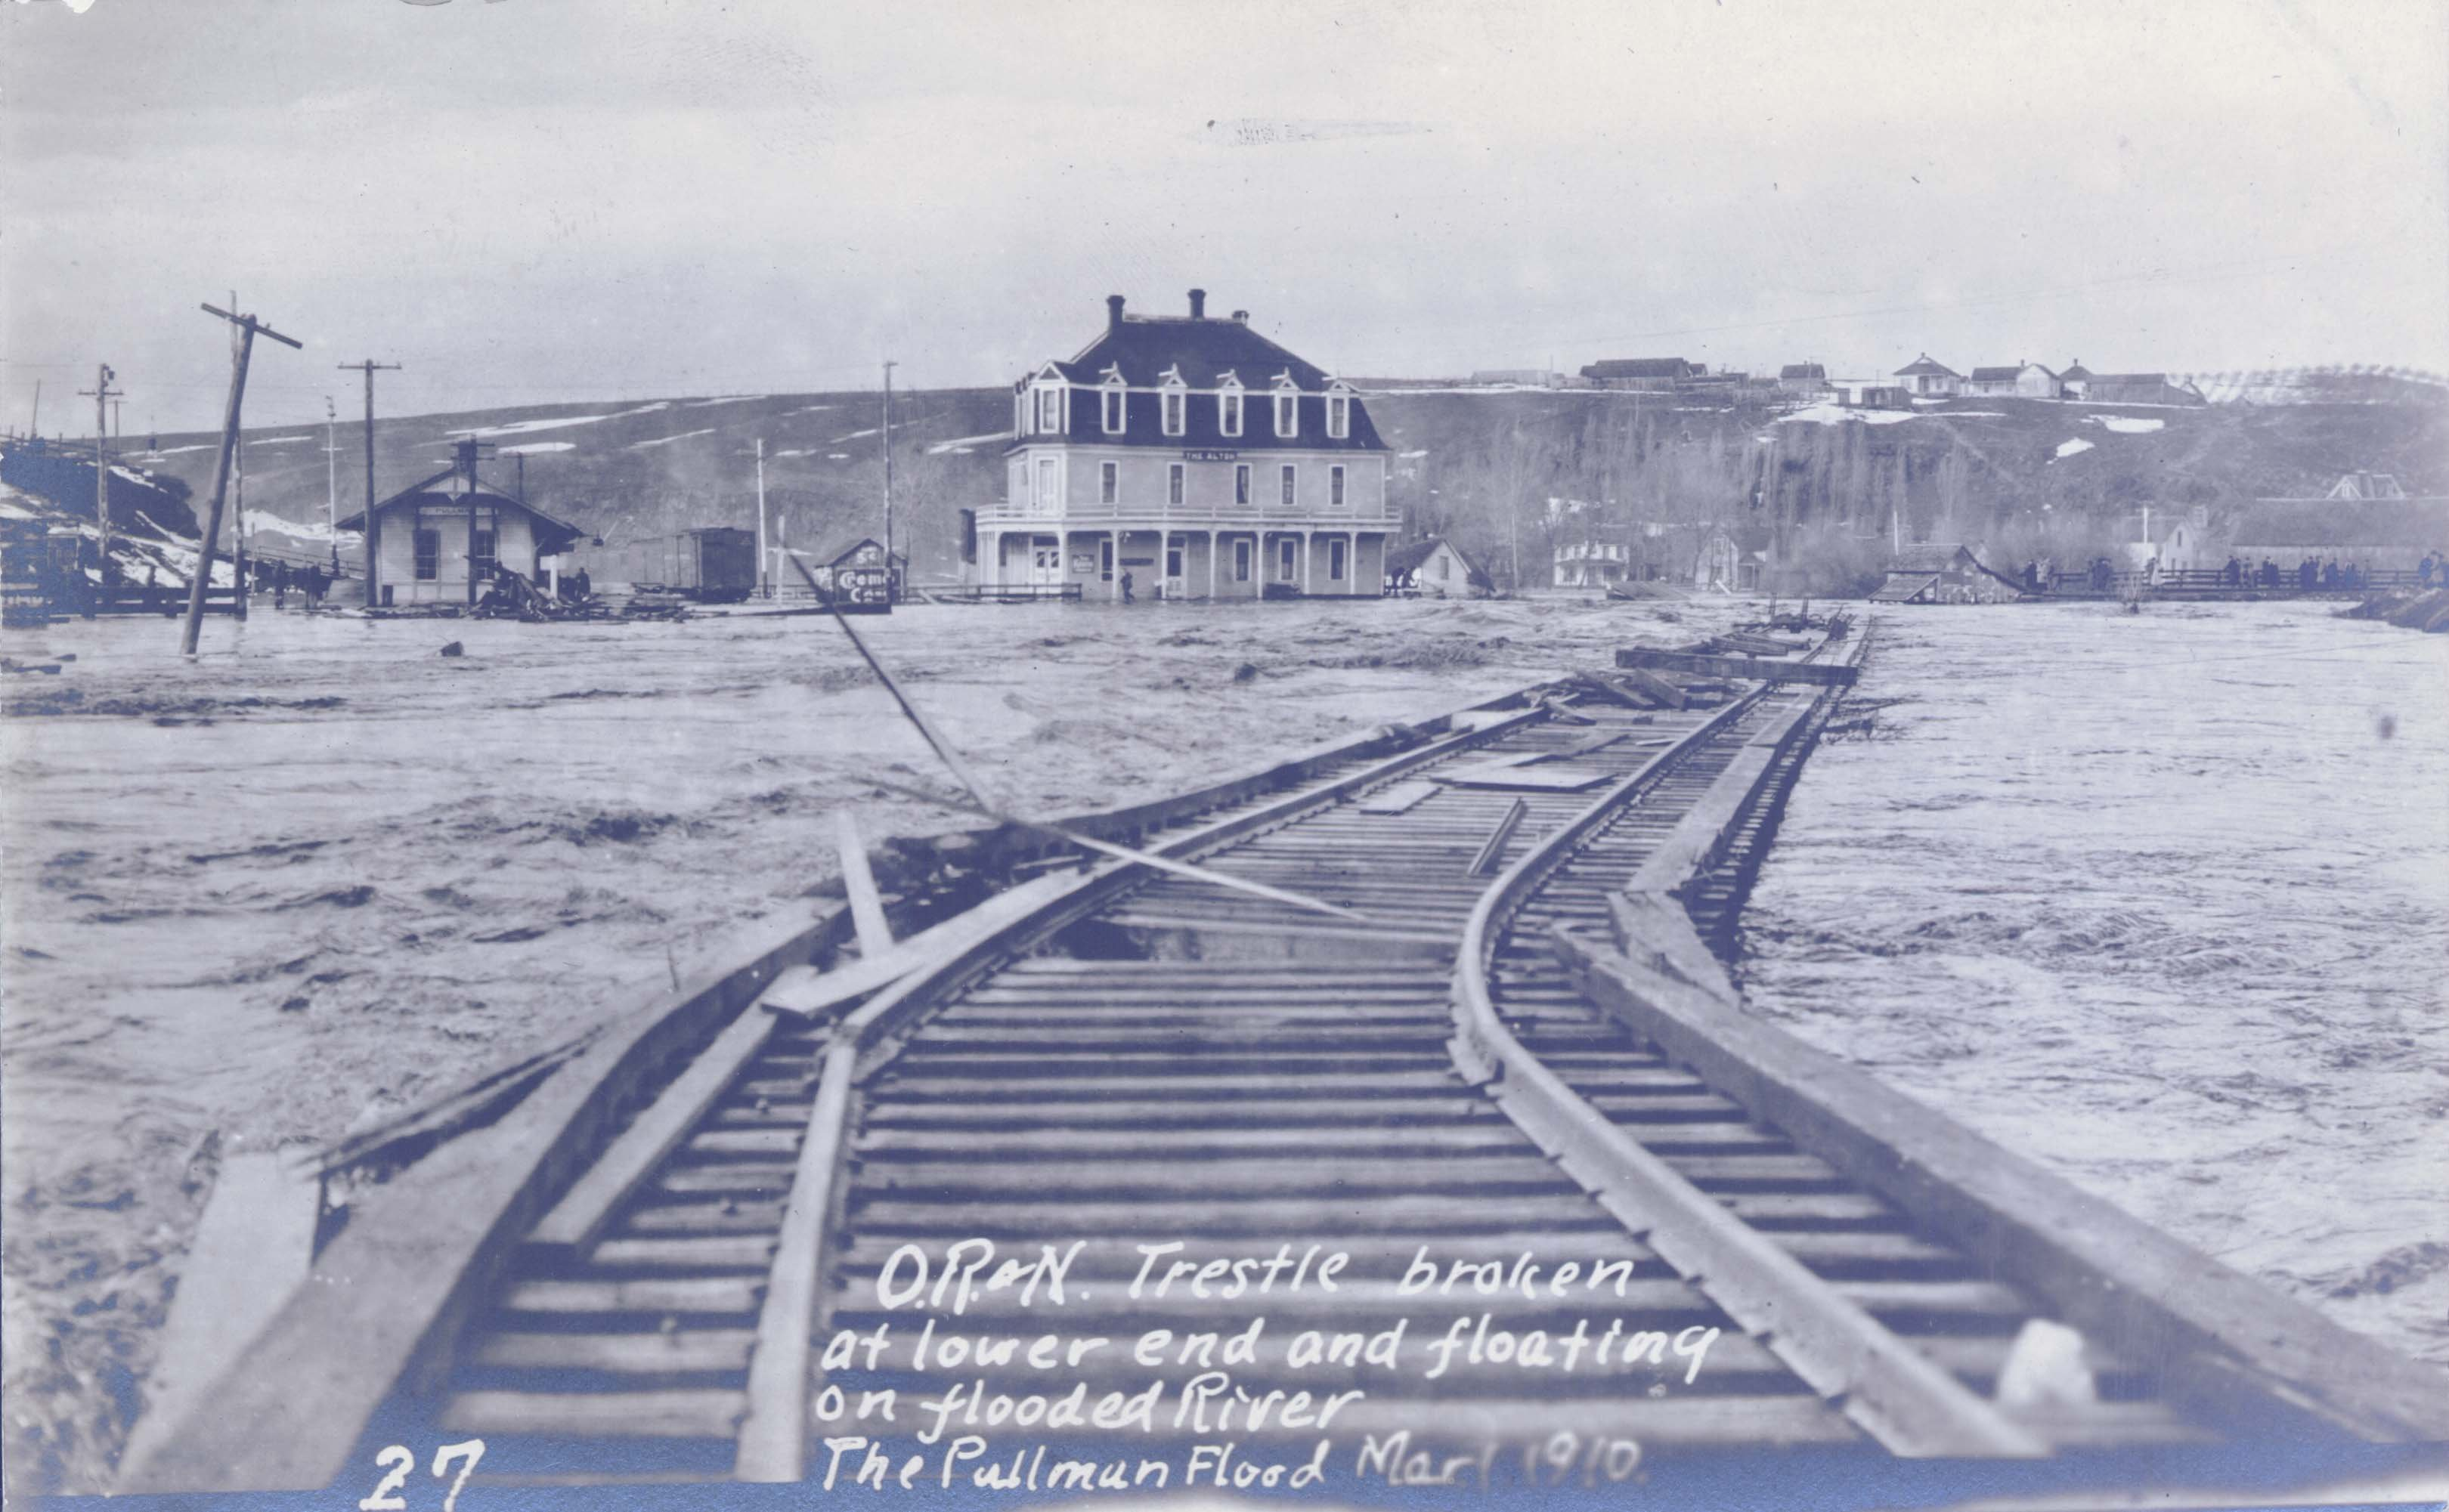 Looking west at the former Union Pacific Depot, with the Oregon Railroad & Navigation Trestle broken at the lower end and floating in flooded Palouse River in 1910. Taken by Robert Burns. Courtesy WSU Special Collections. http://content.libraries.wsu.edu/